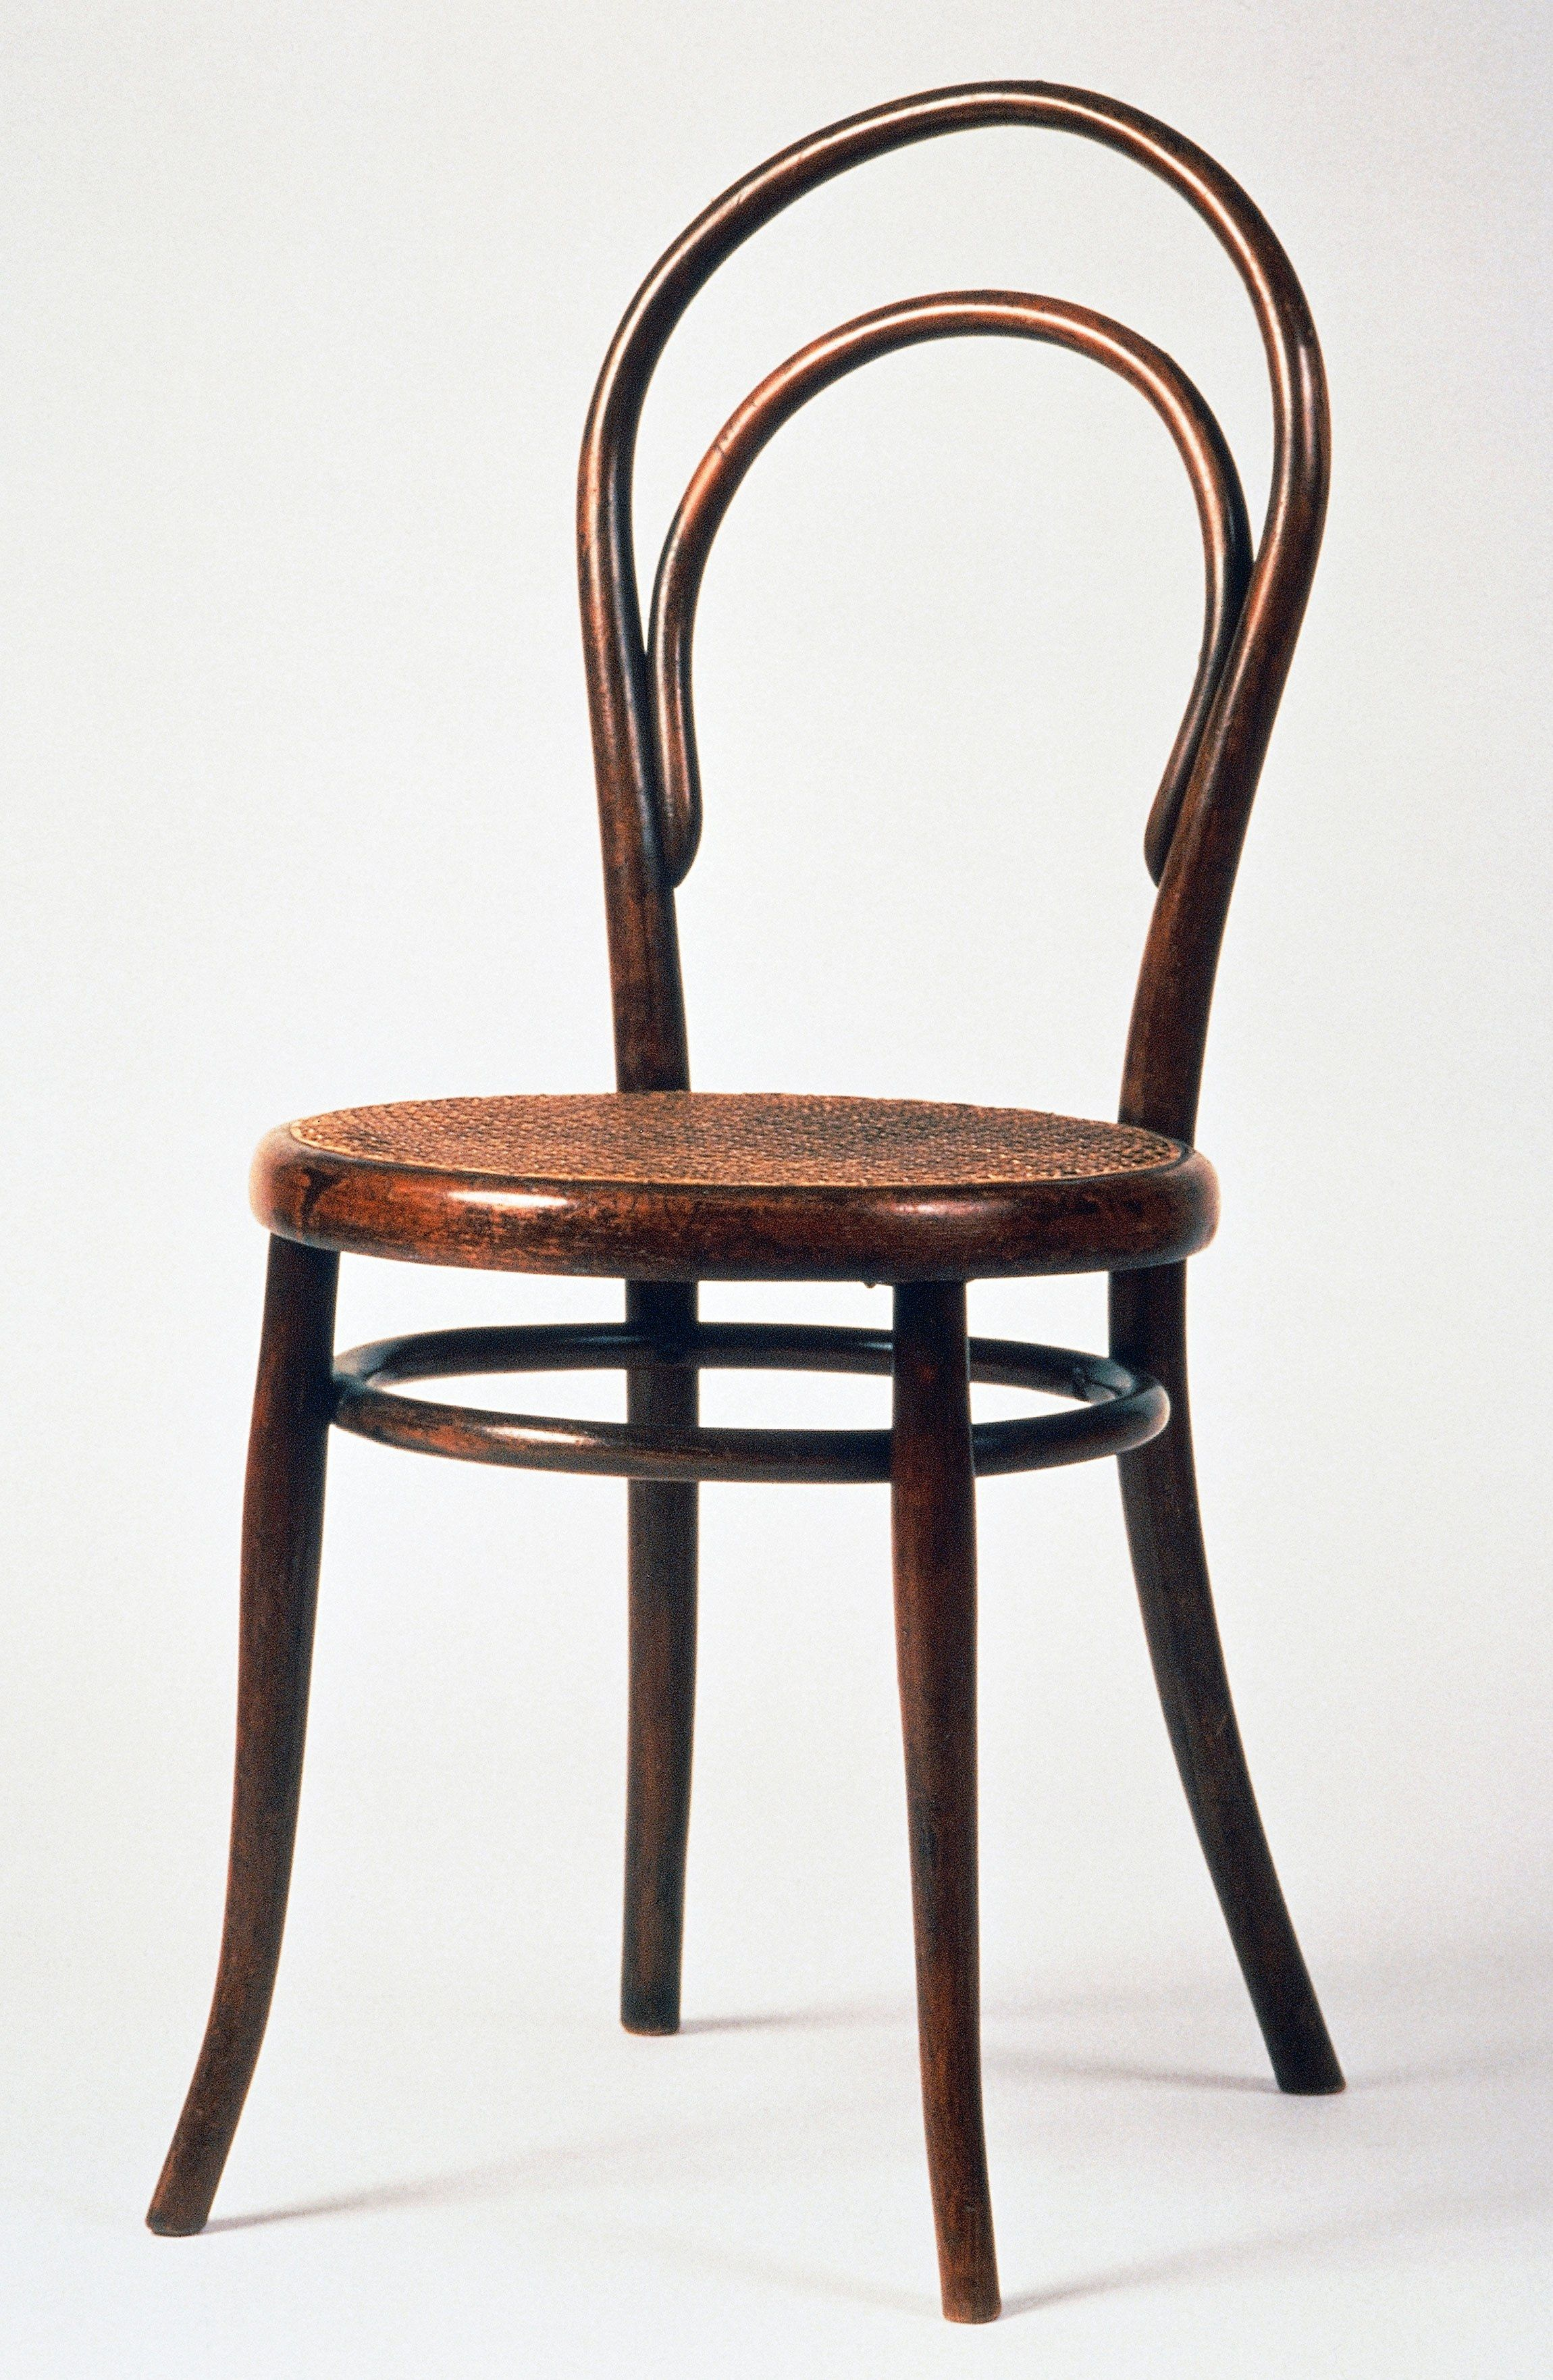 Thonet Michael 7 Chairs That Changed The World Chair Victorian Chair